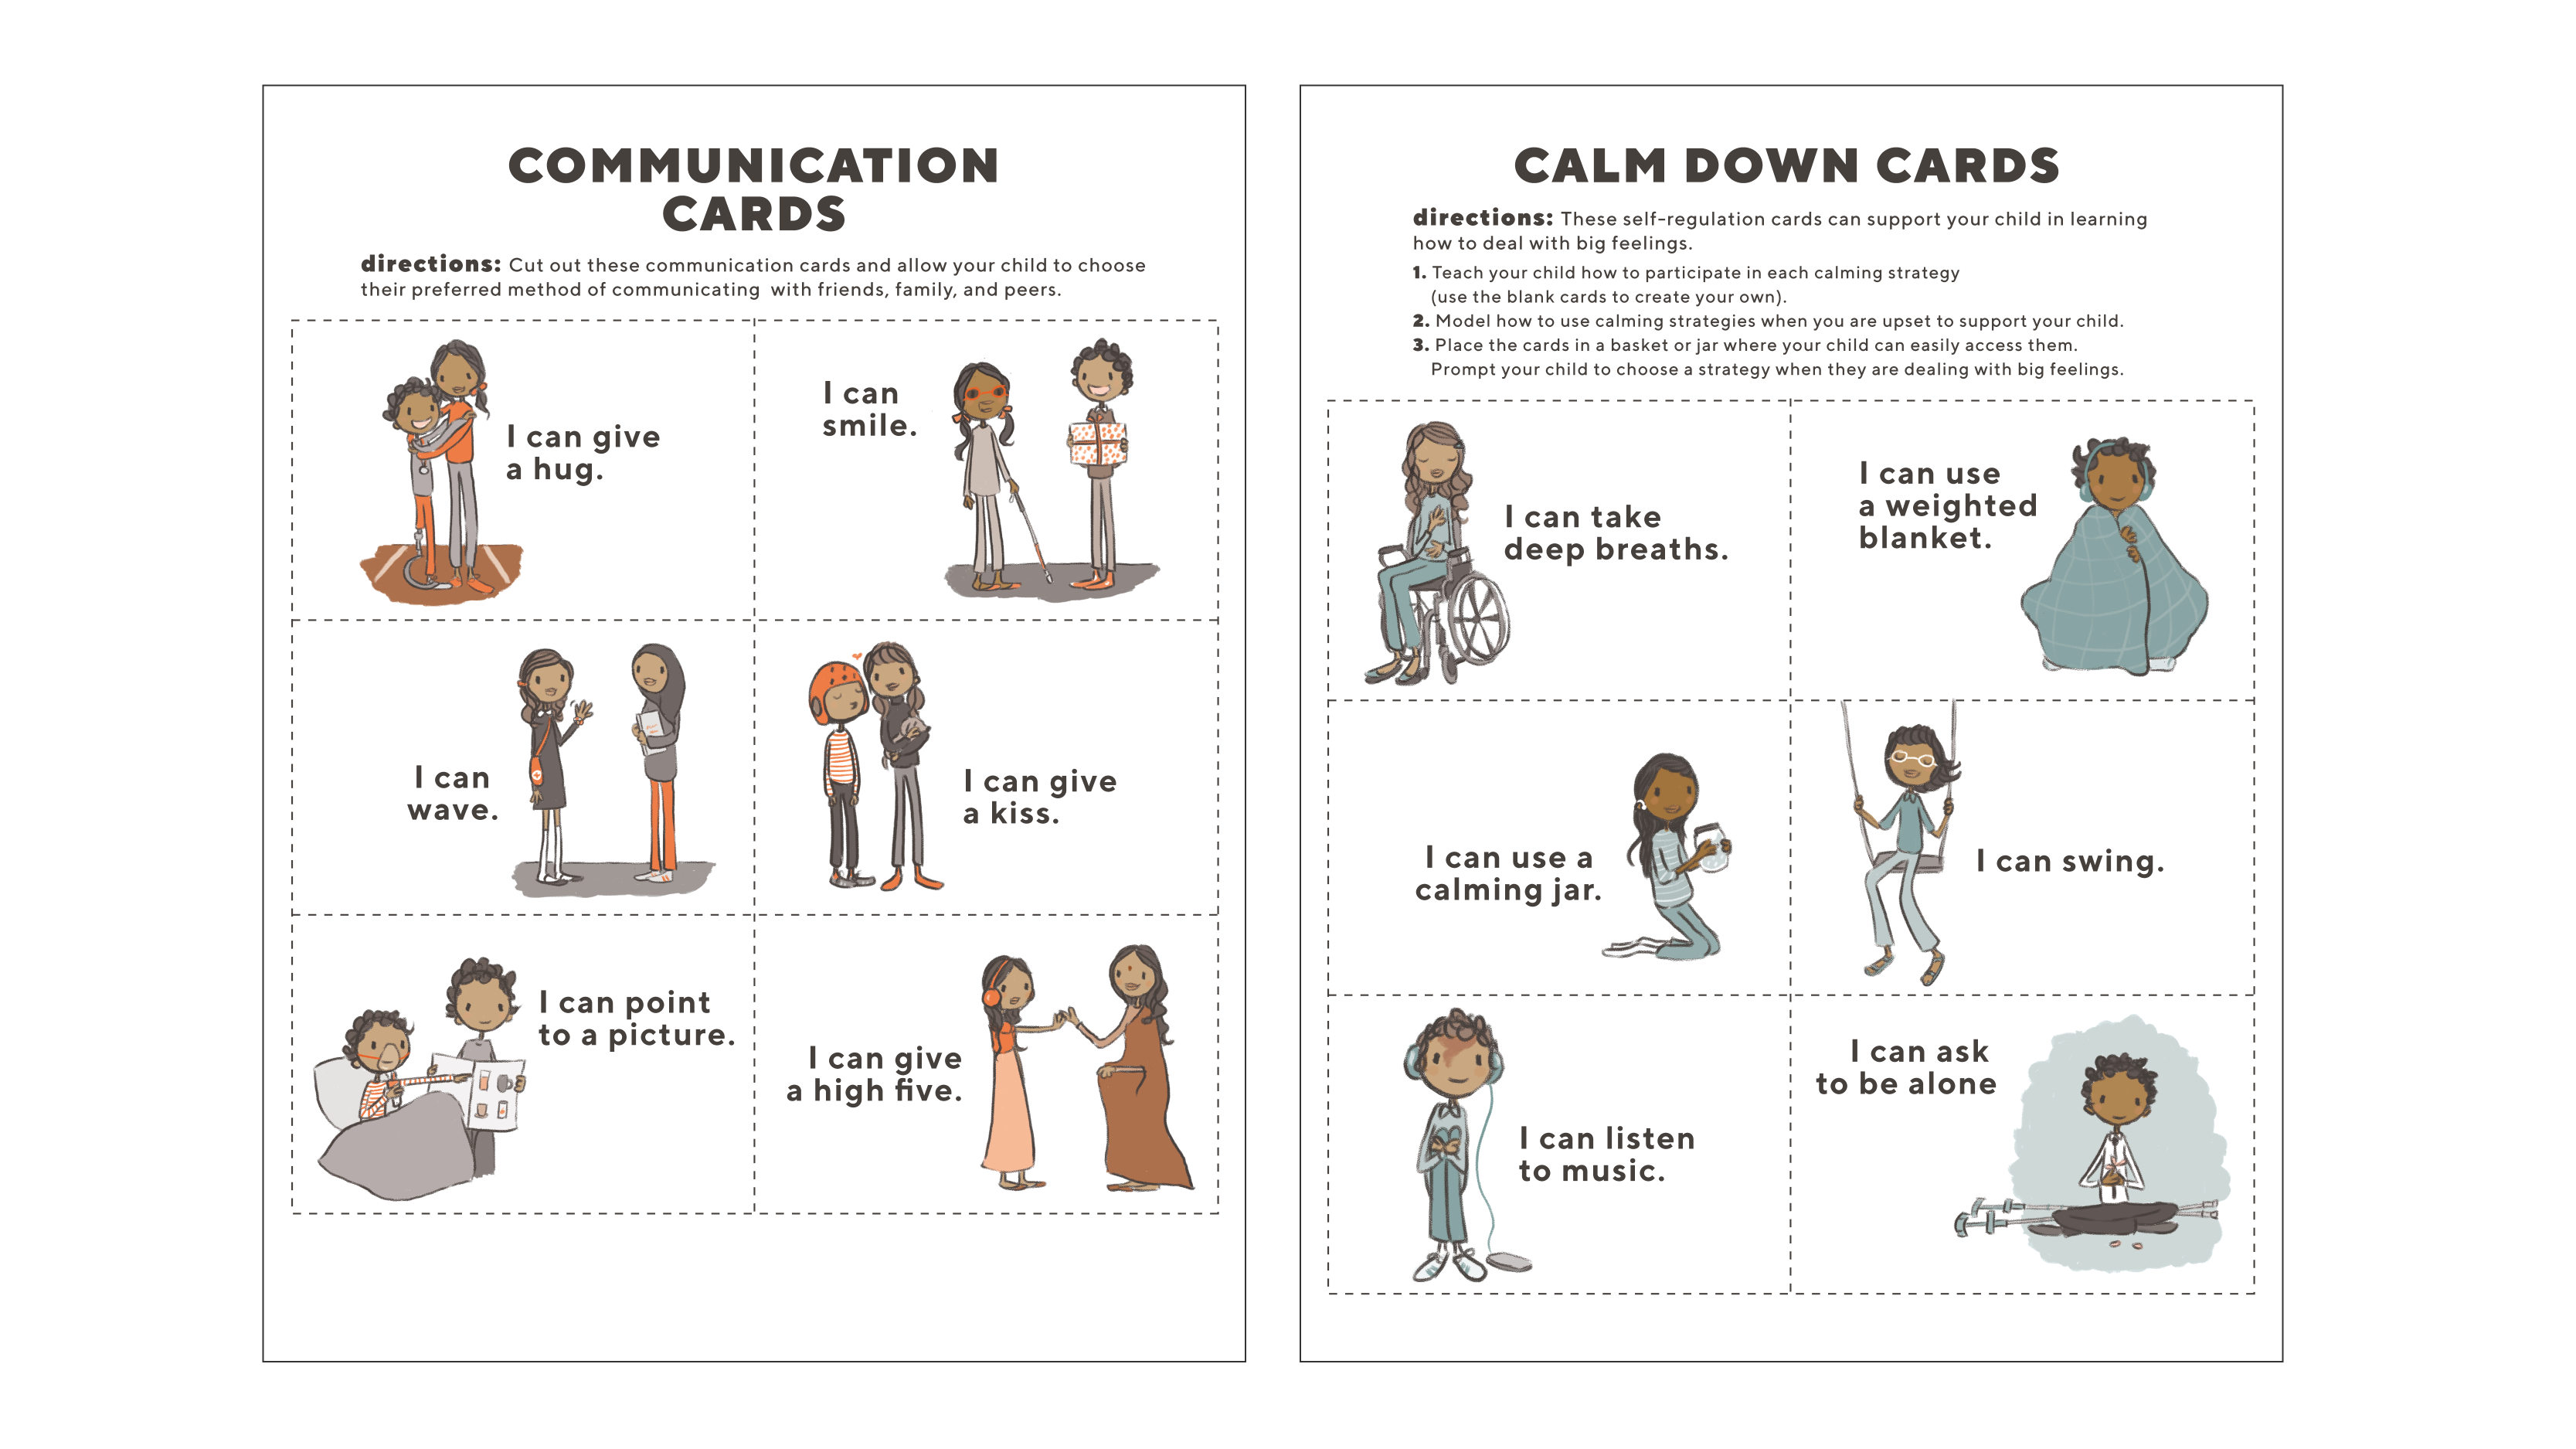 Communication and Calm Down Cards